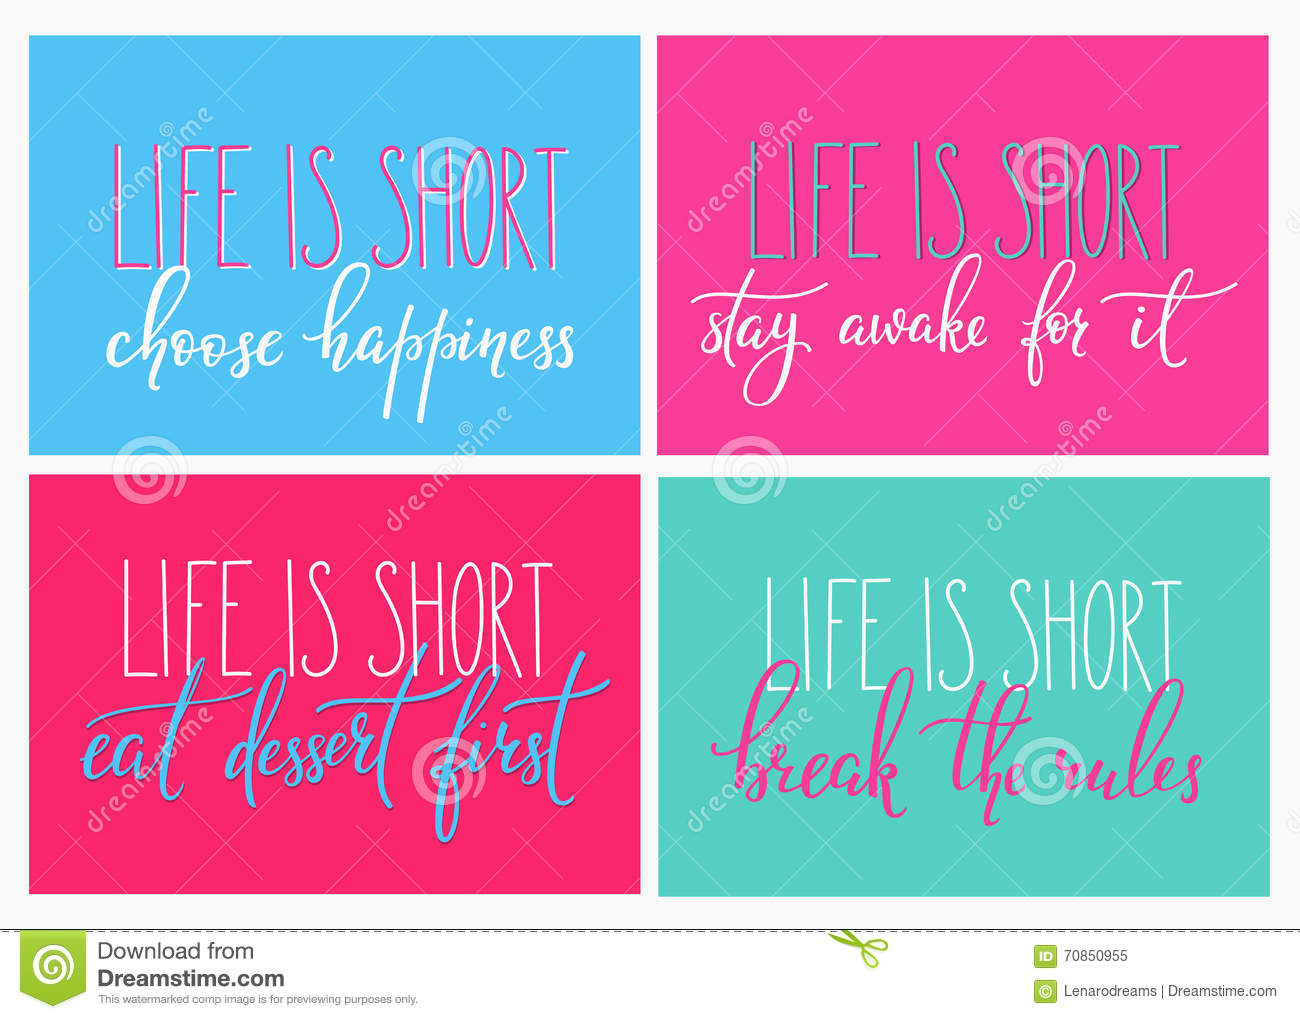 Eat Dessert First Quote: Life Is Short Eat Dessert First Quote Lettering Stock